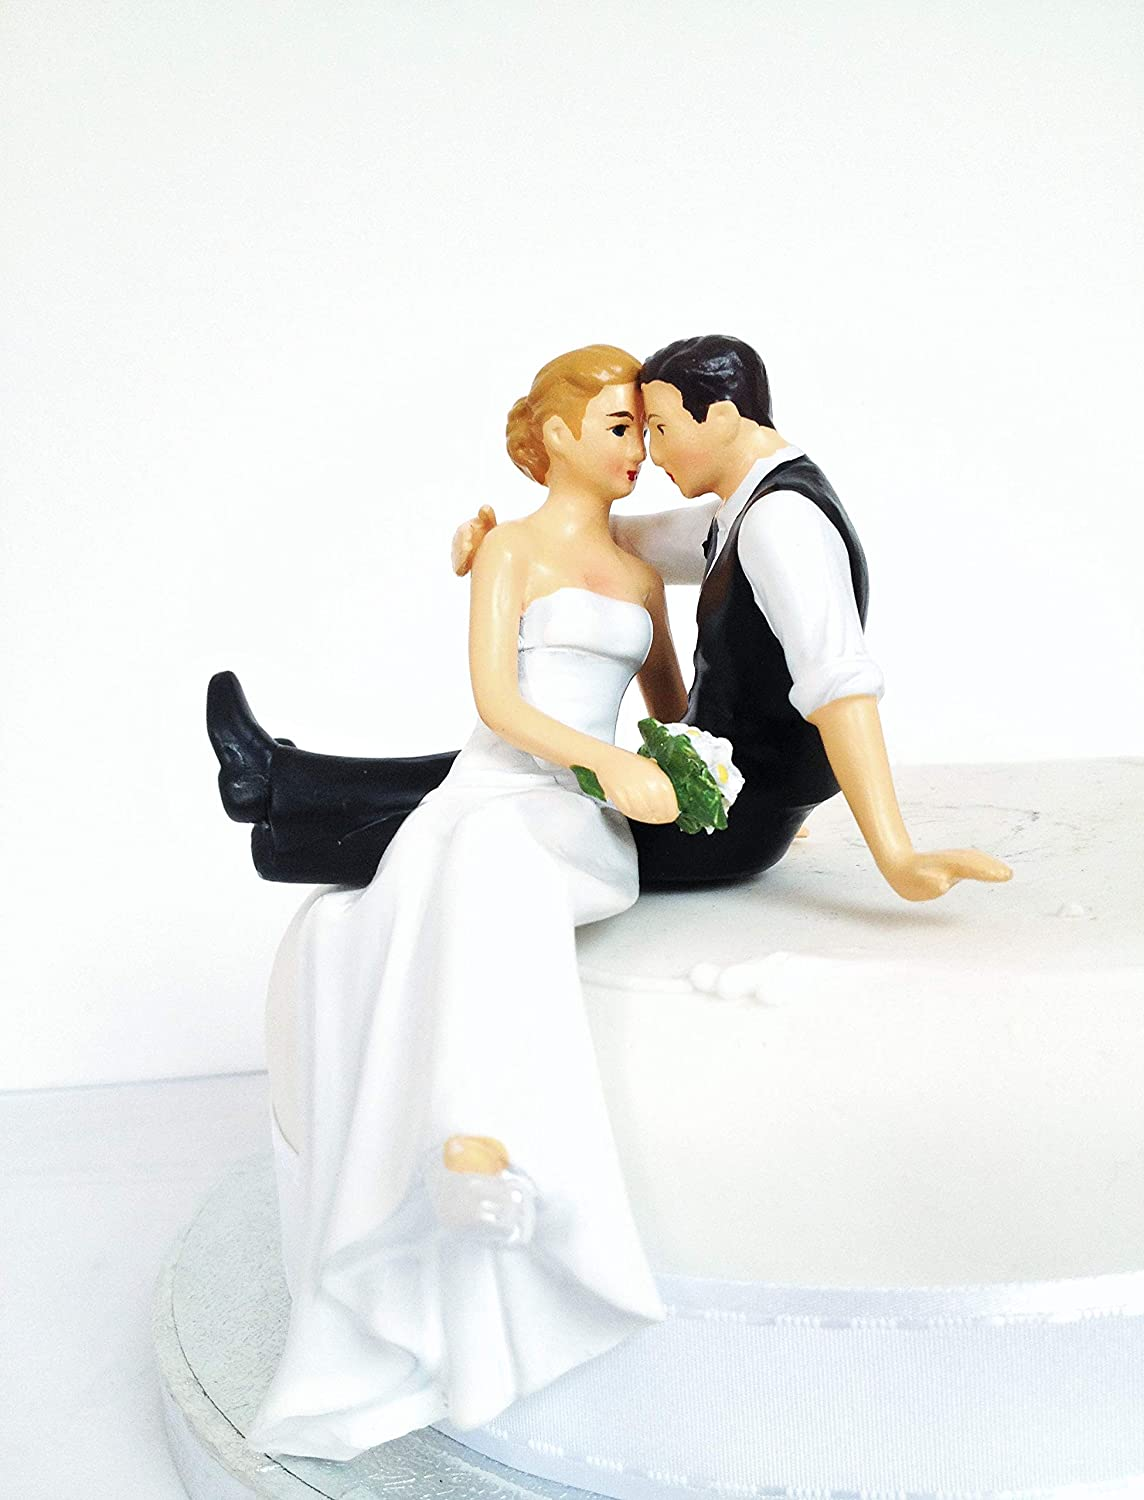 Wedding Cake Toppers Assorted Colours Bride And Groom Sitting Standing Wedding Decoration Present Cake Topper 10 By Dreamwedding Uk Amazon Ca Home Kitchen